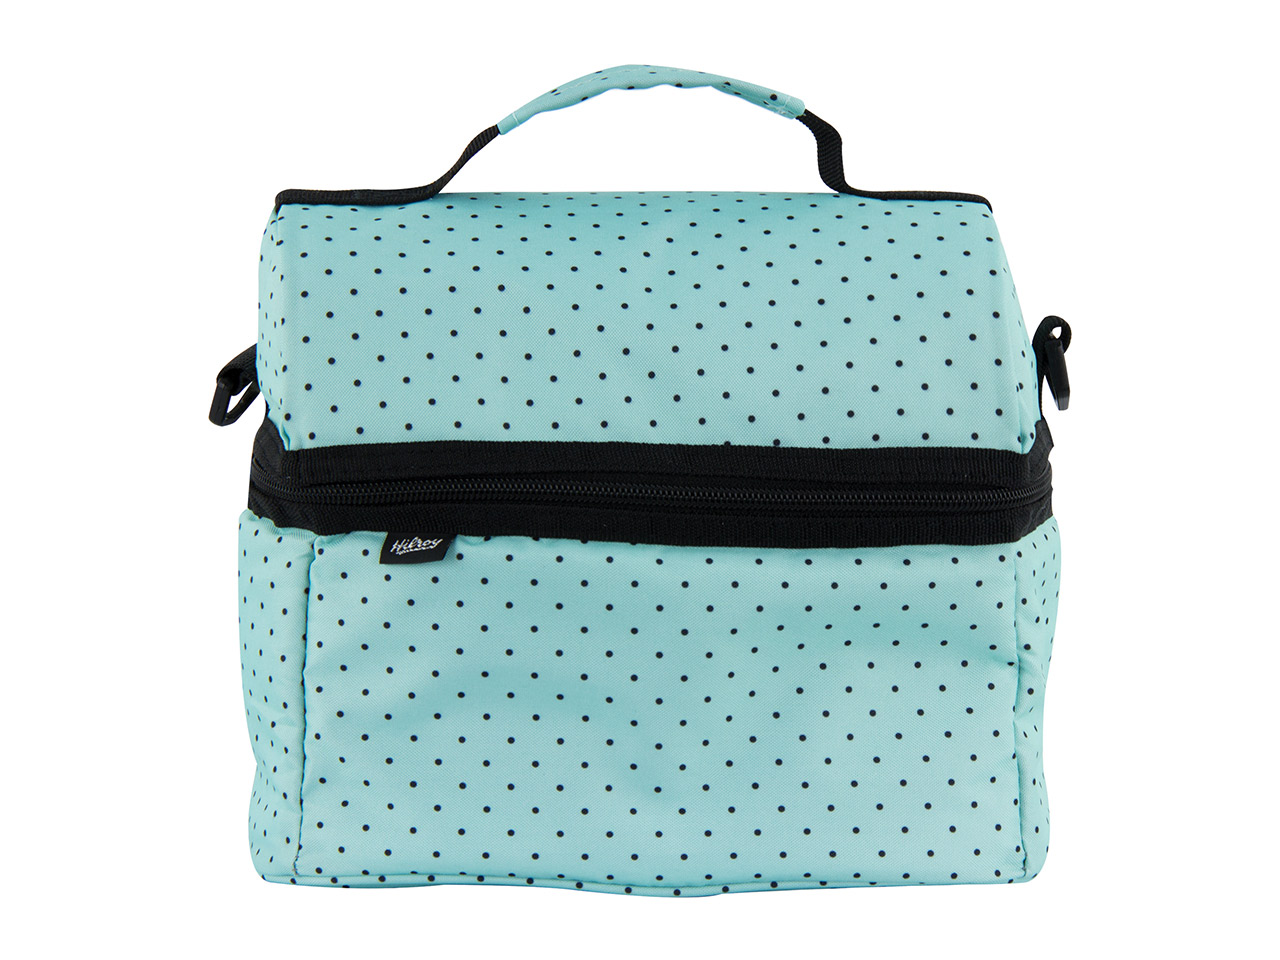 Black and Turquoise Polka Dot Lunch Bag